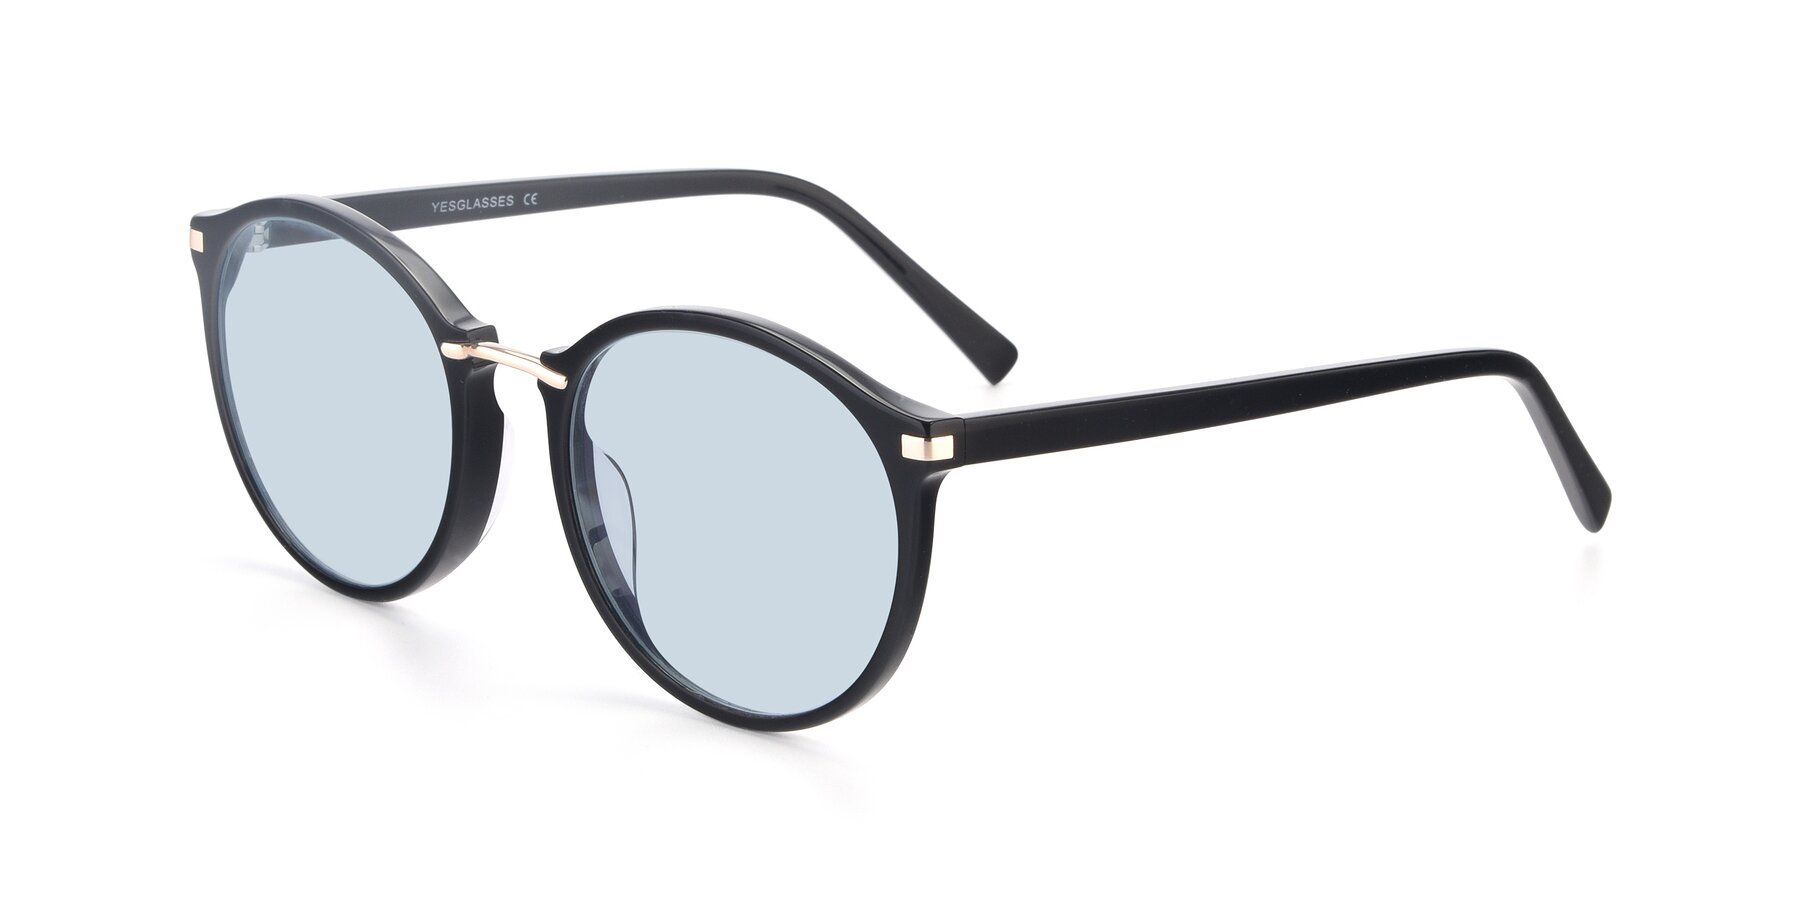 Angle of 17582 in Black with Light Blue Tinted Lenses